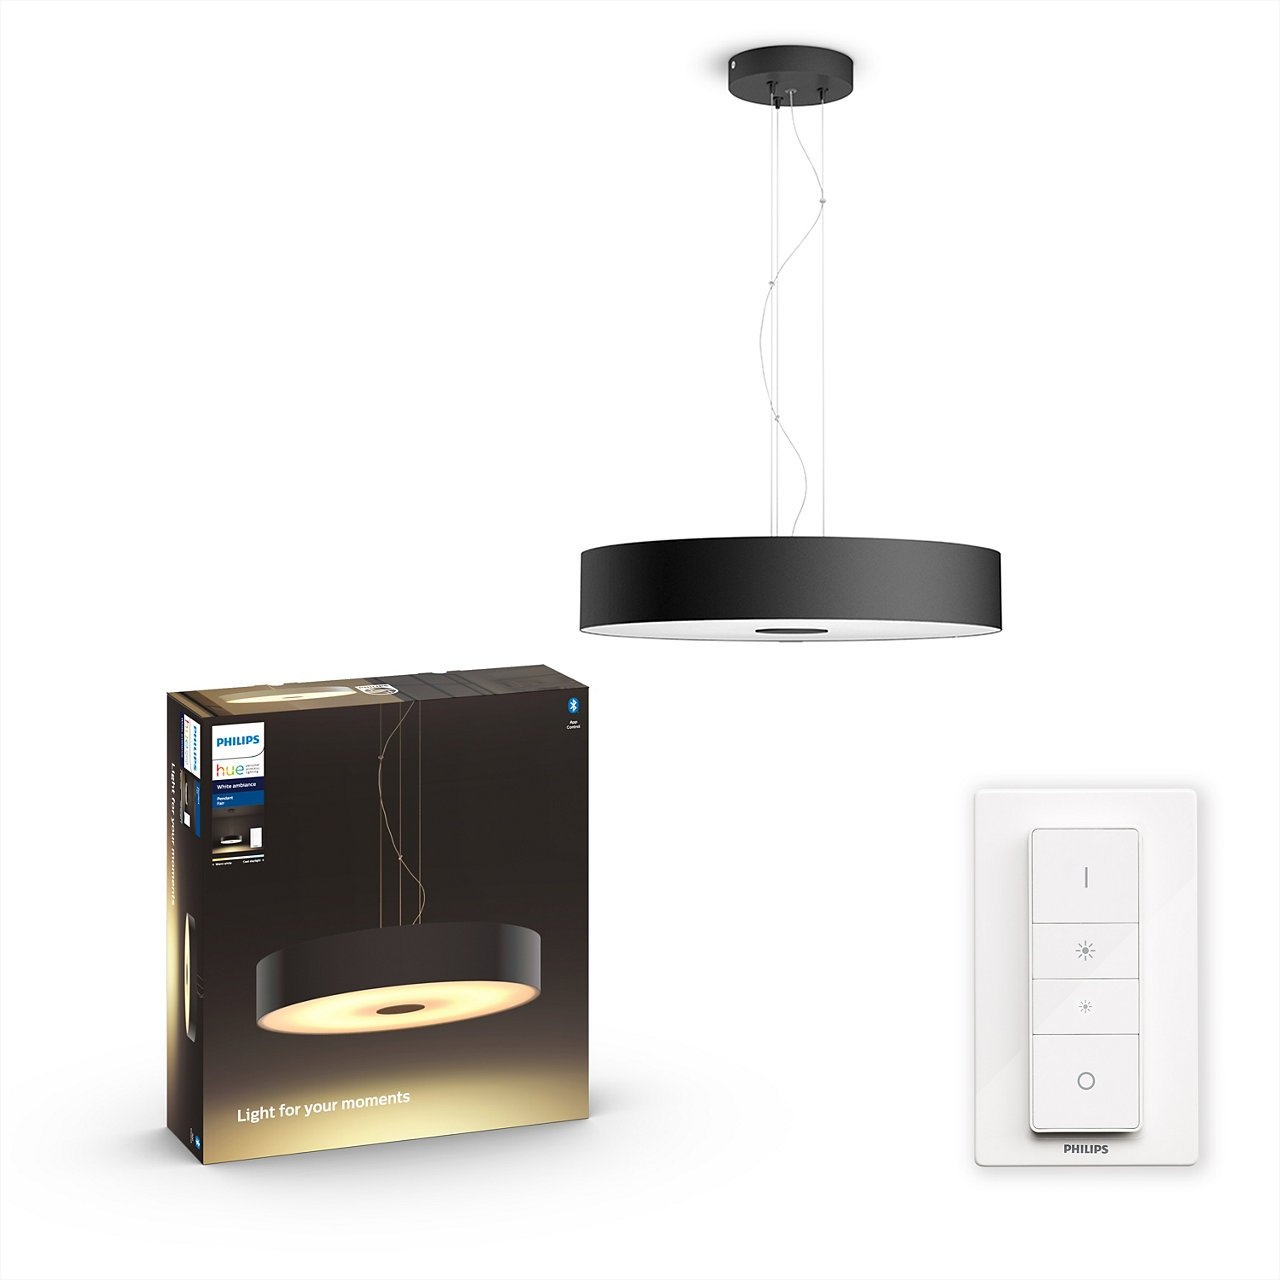 Philips Hue - Fair Hue pendant black 1x39W 24V - White Ambiance - Bluetooth Included Dimmer